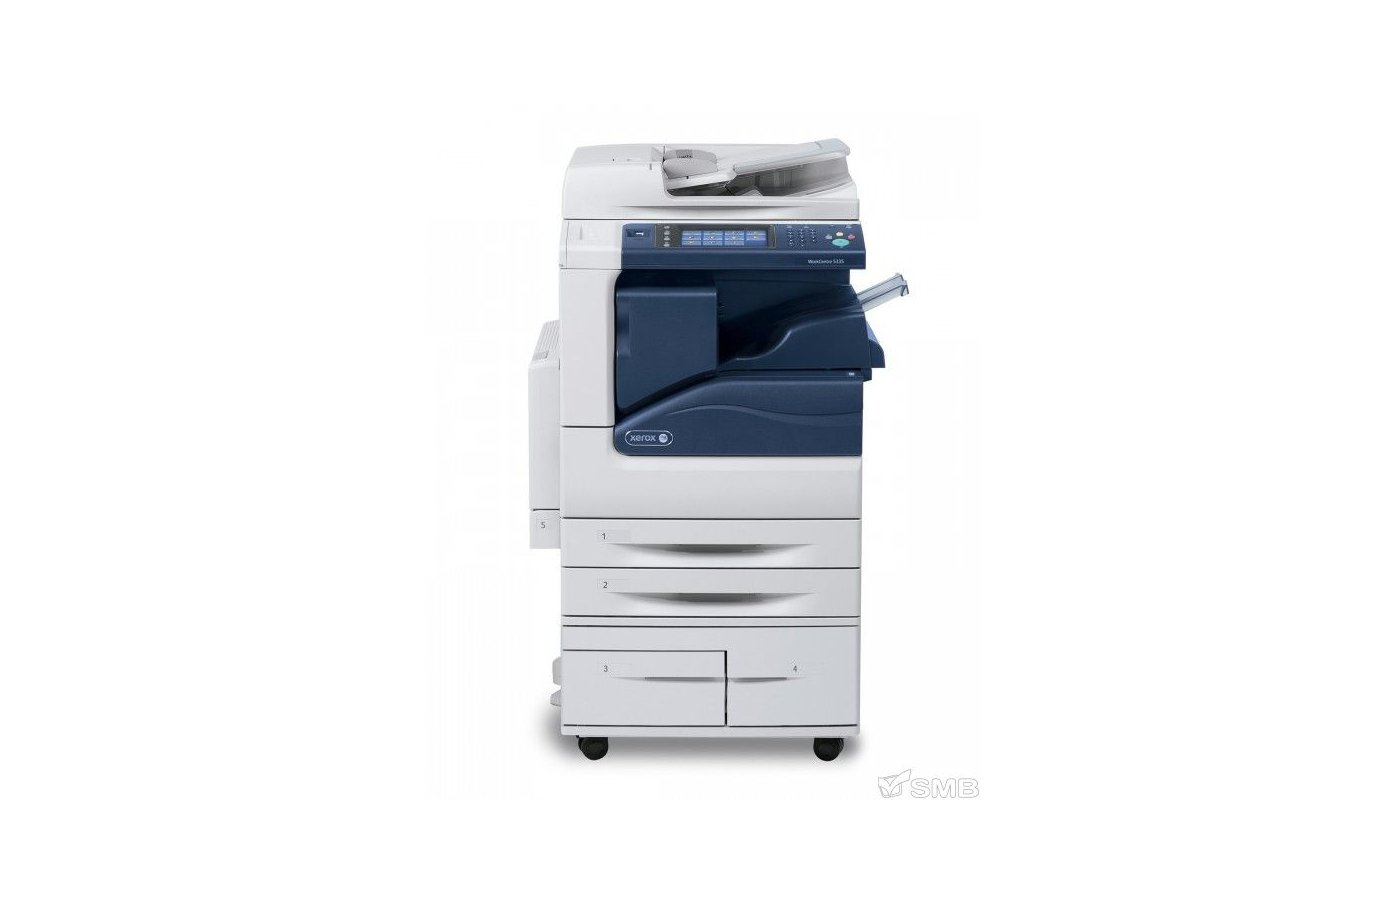 МФУ Xerox WorkCentre 5300 DADF/OCT/2 лотка/тумба